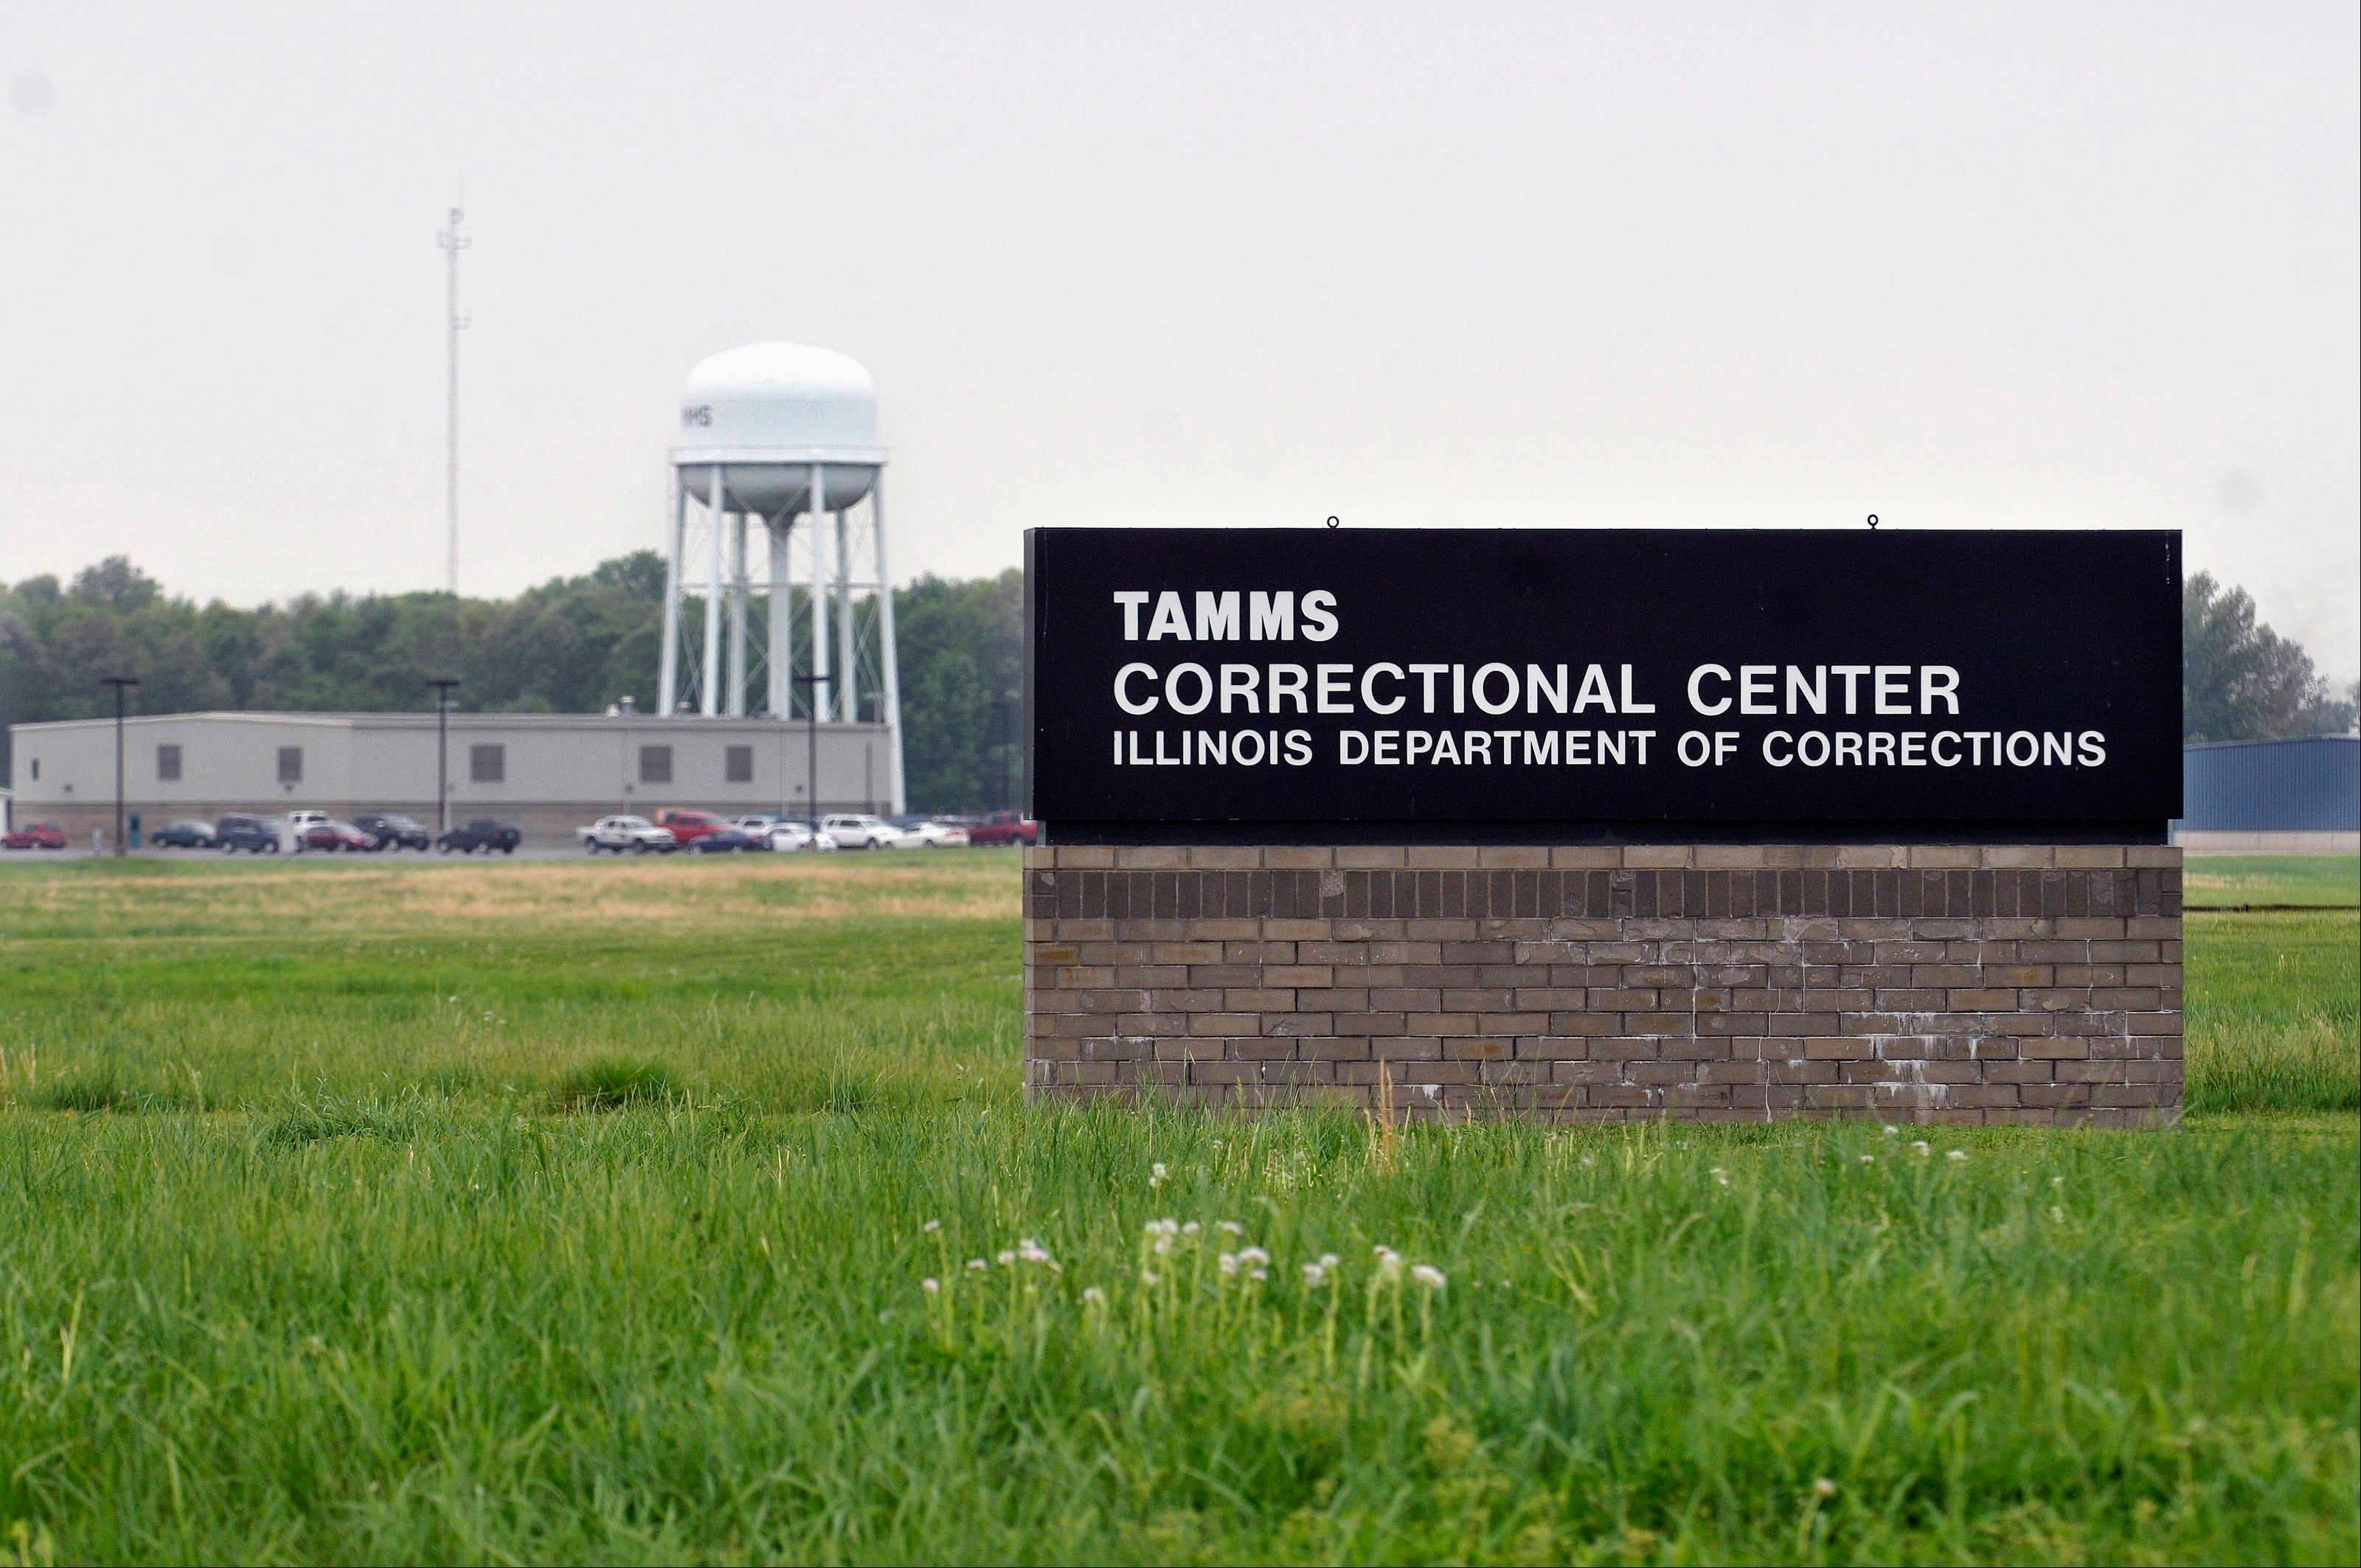 The Tamms Correctional Center's days are numbered.